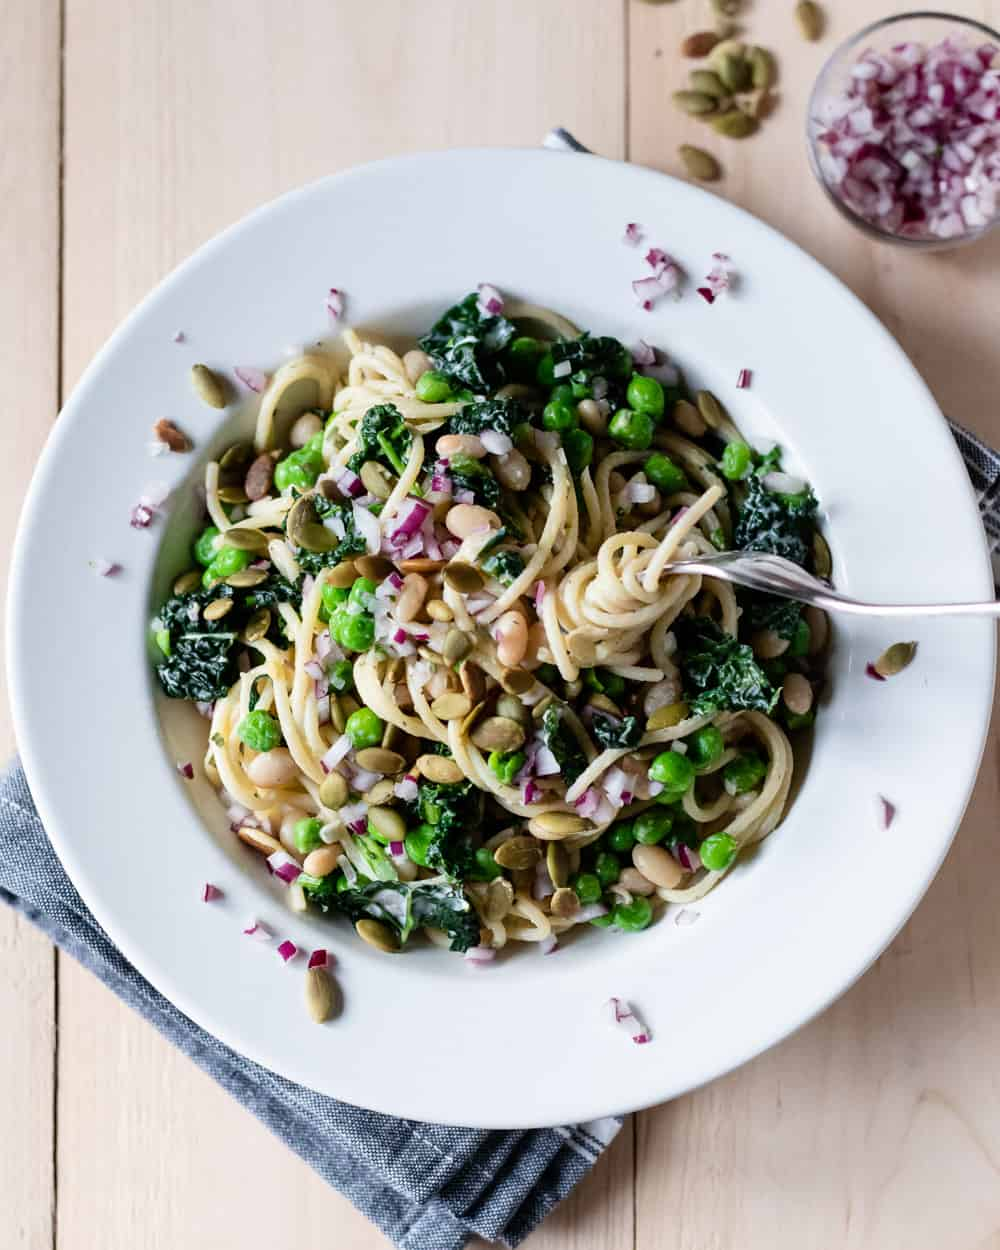 Pasta with green peas and dino kale in a bowl